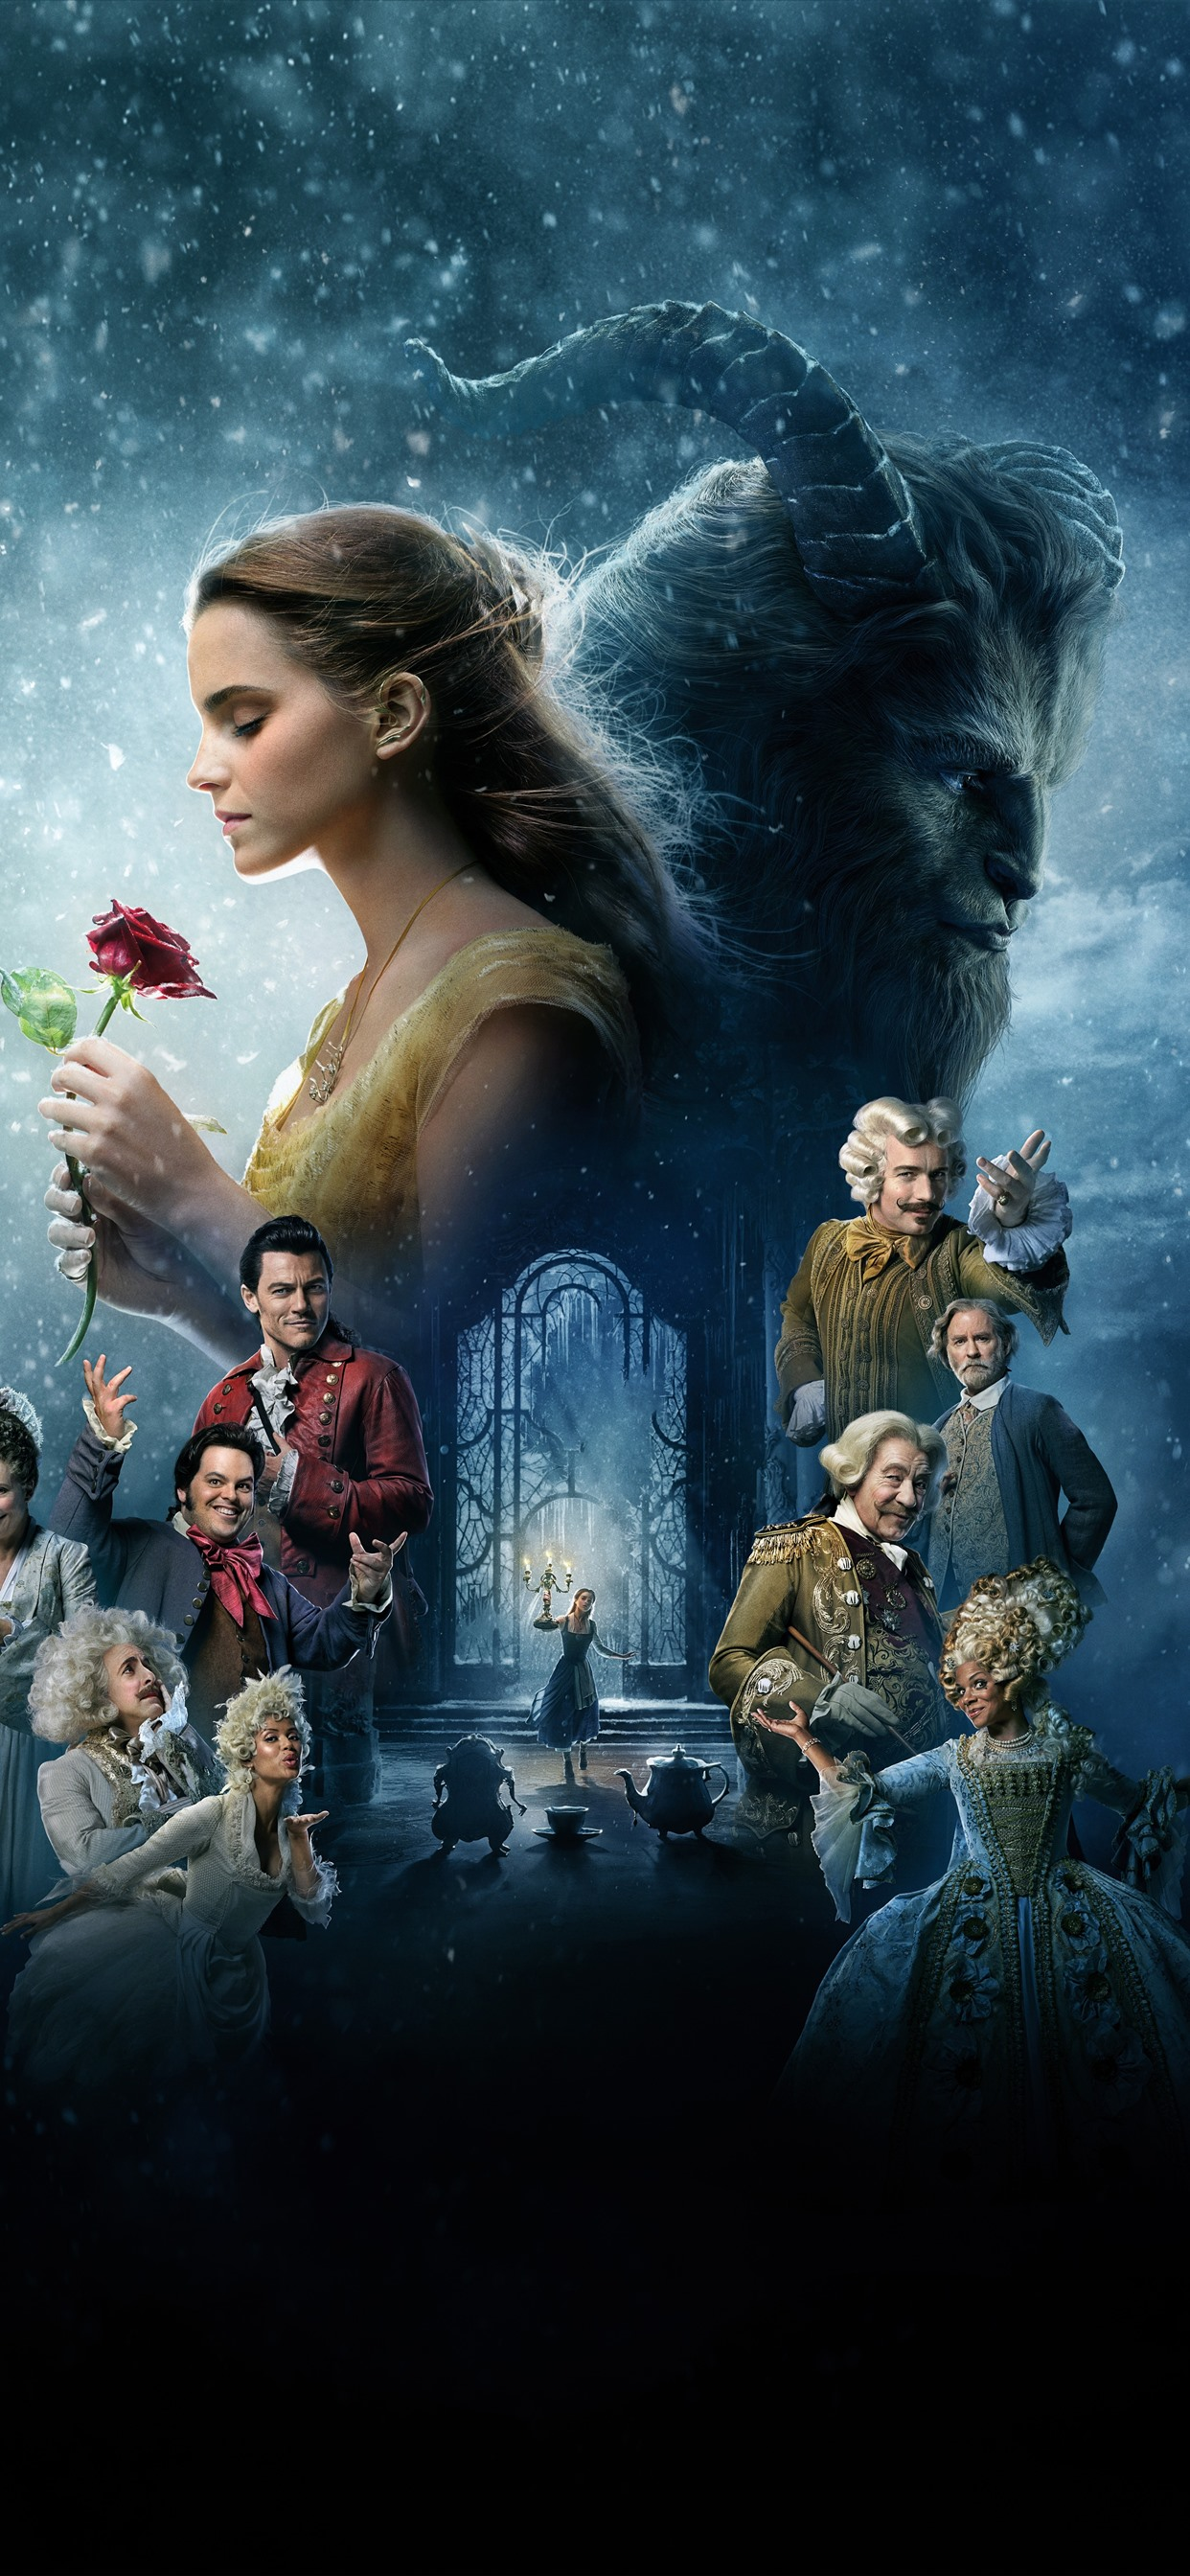 Disney Movie Beauty And The Beast 1242x2688 Iphone Xs Max